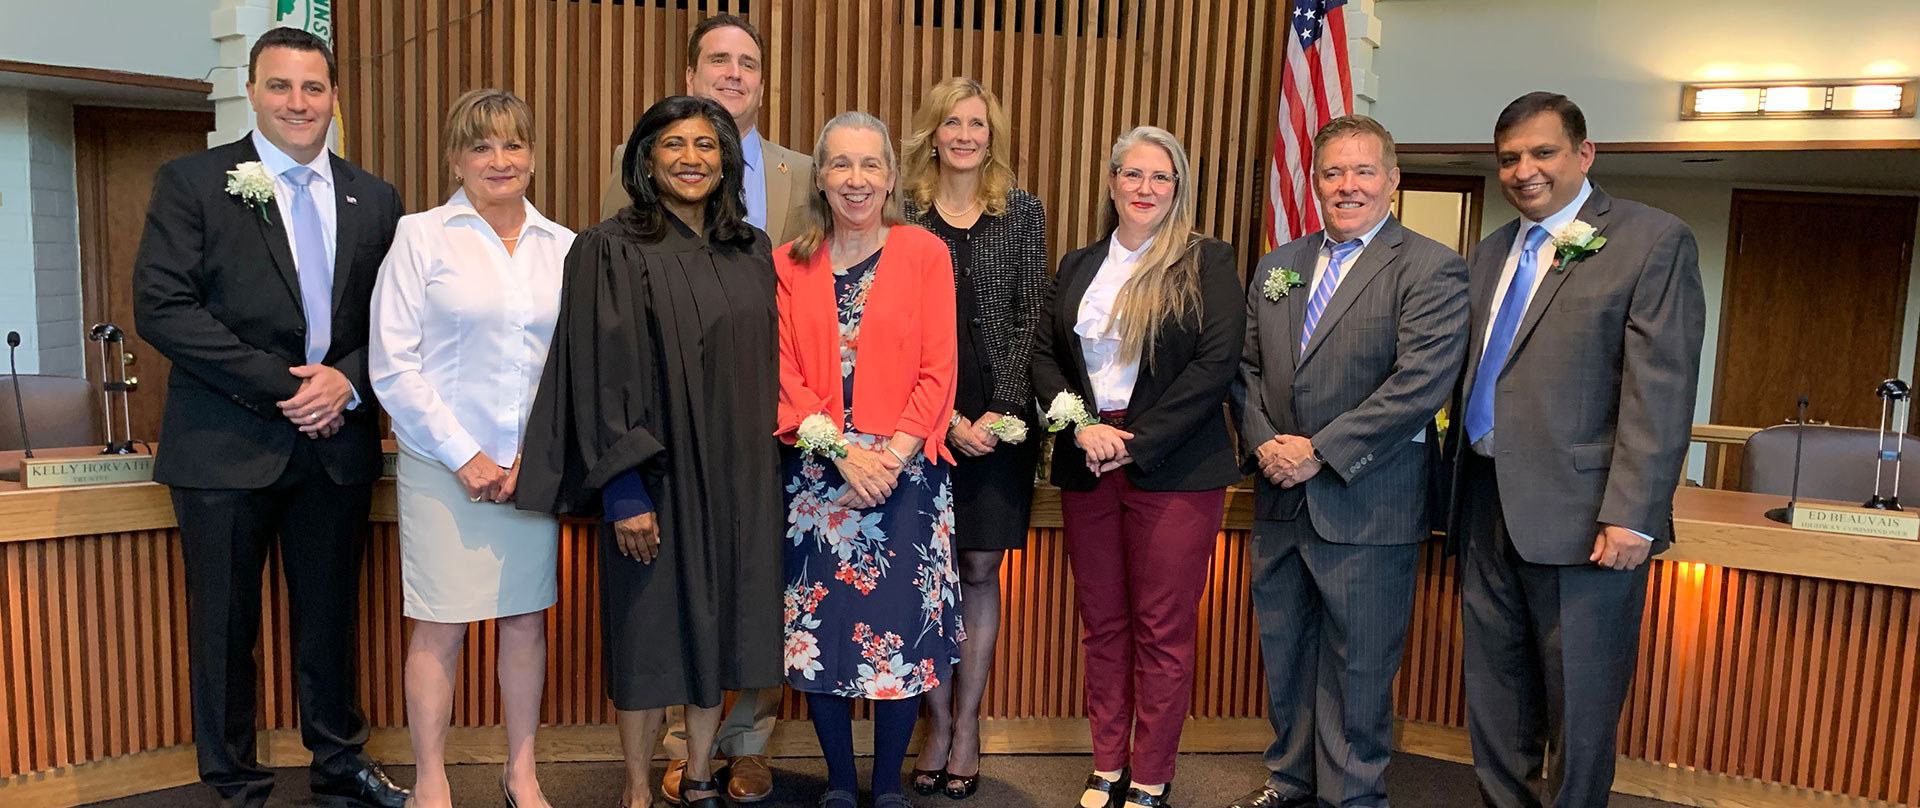 Maine Township Elected Officials at Oath of Office Ceremony